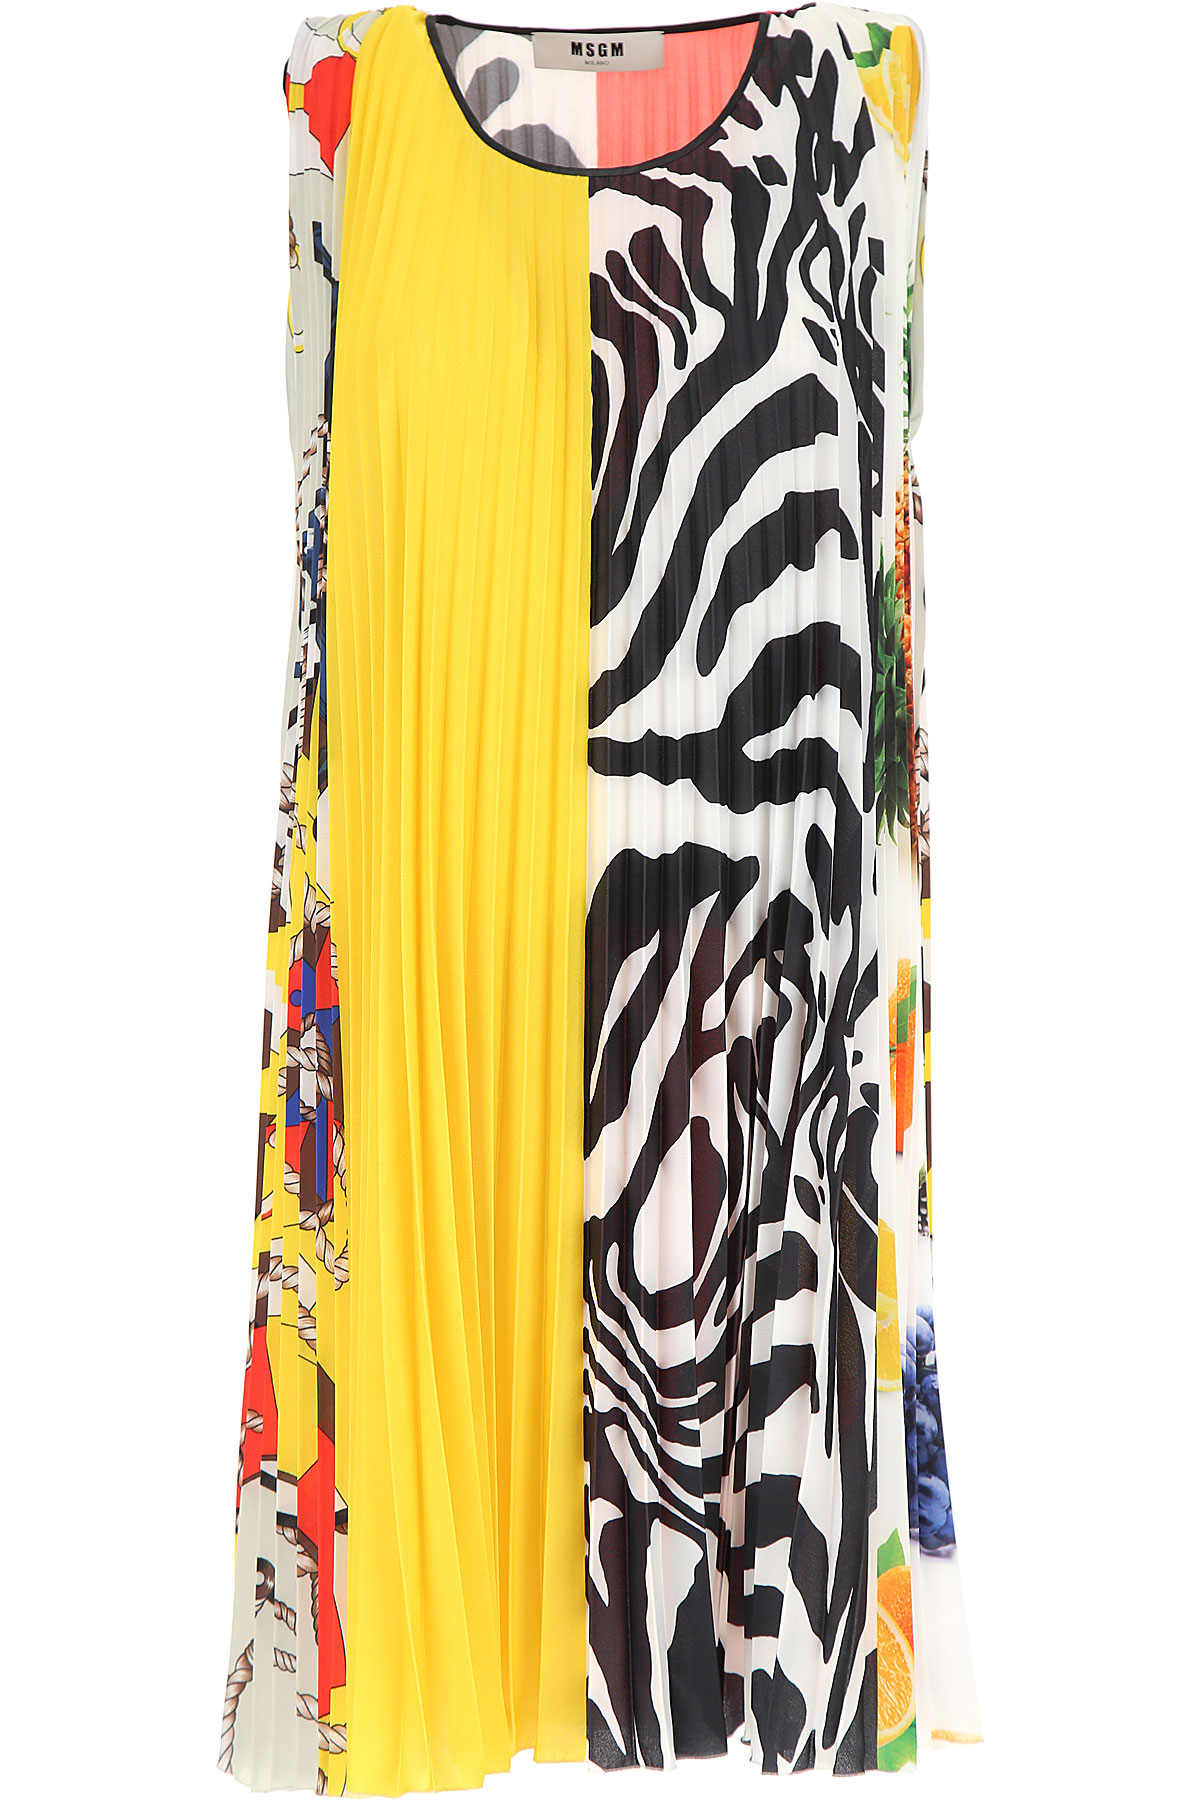 MSGM Dress for Women, Evening Cocktail Party, Multicolor, polyester, 2017, 4 6 8